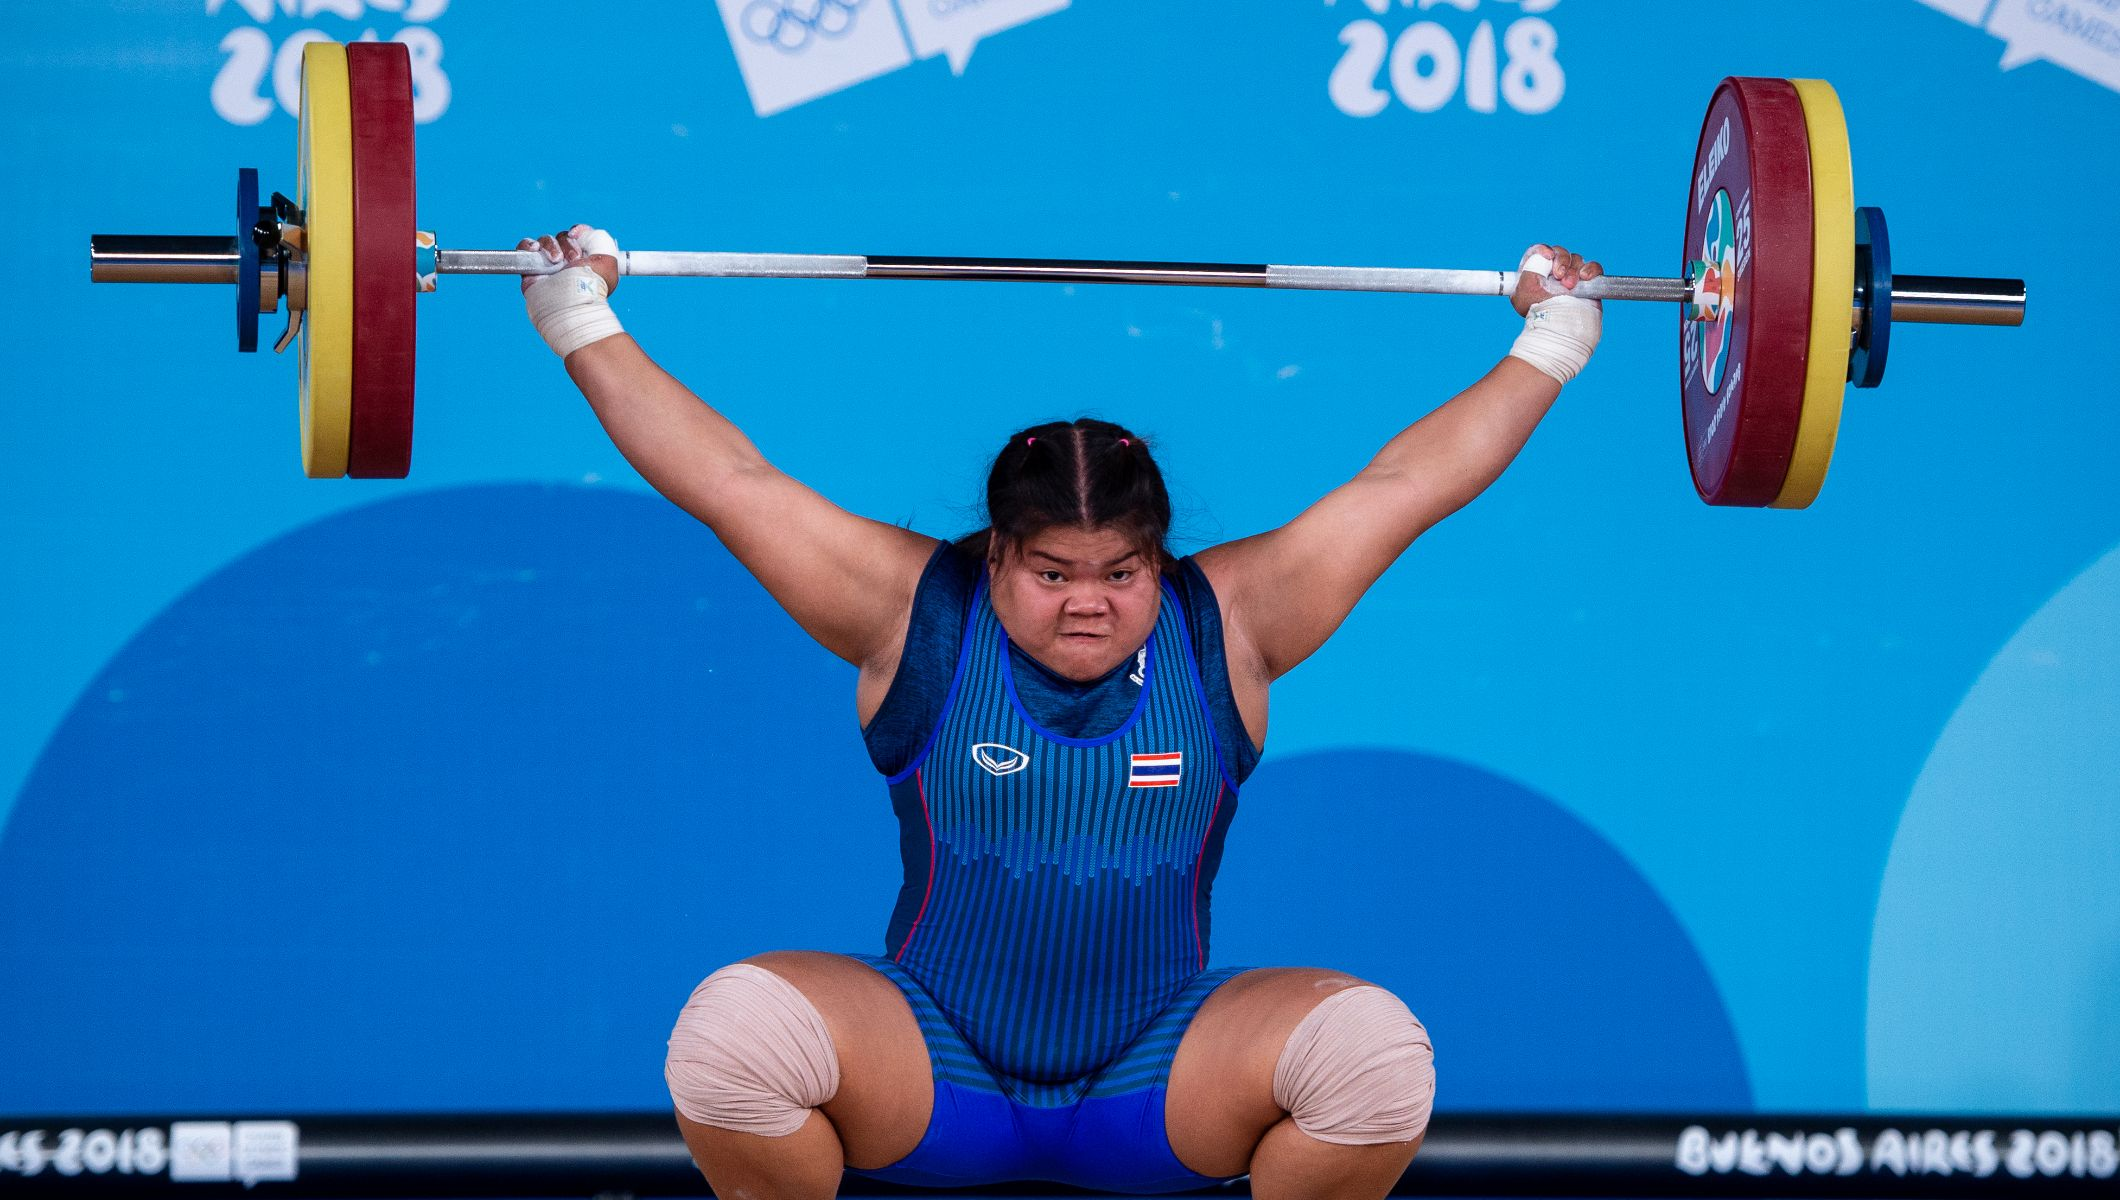 khamhaeng dominates and yousefi seals stunning weightlifting win